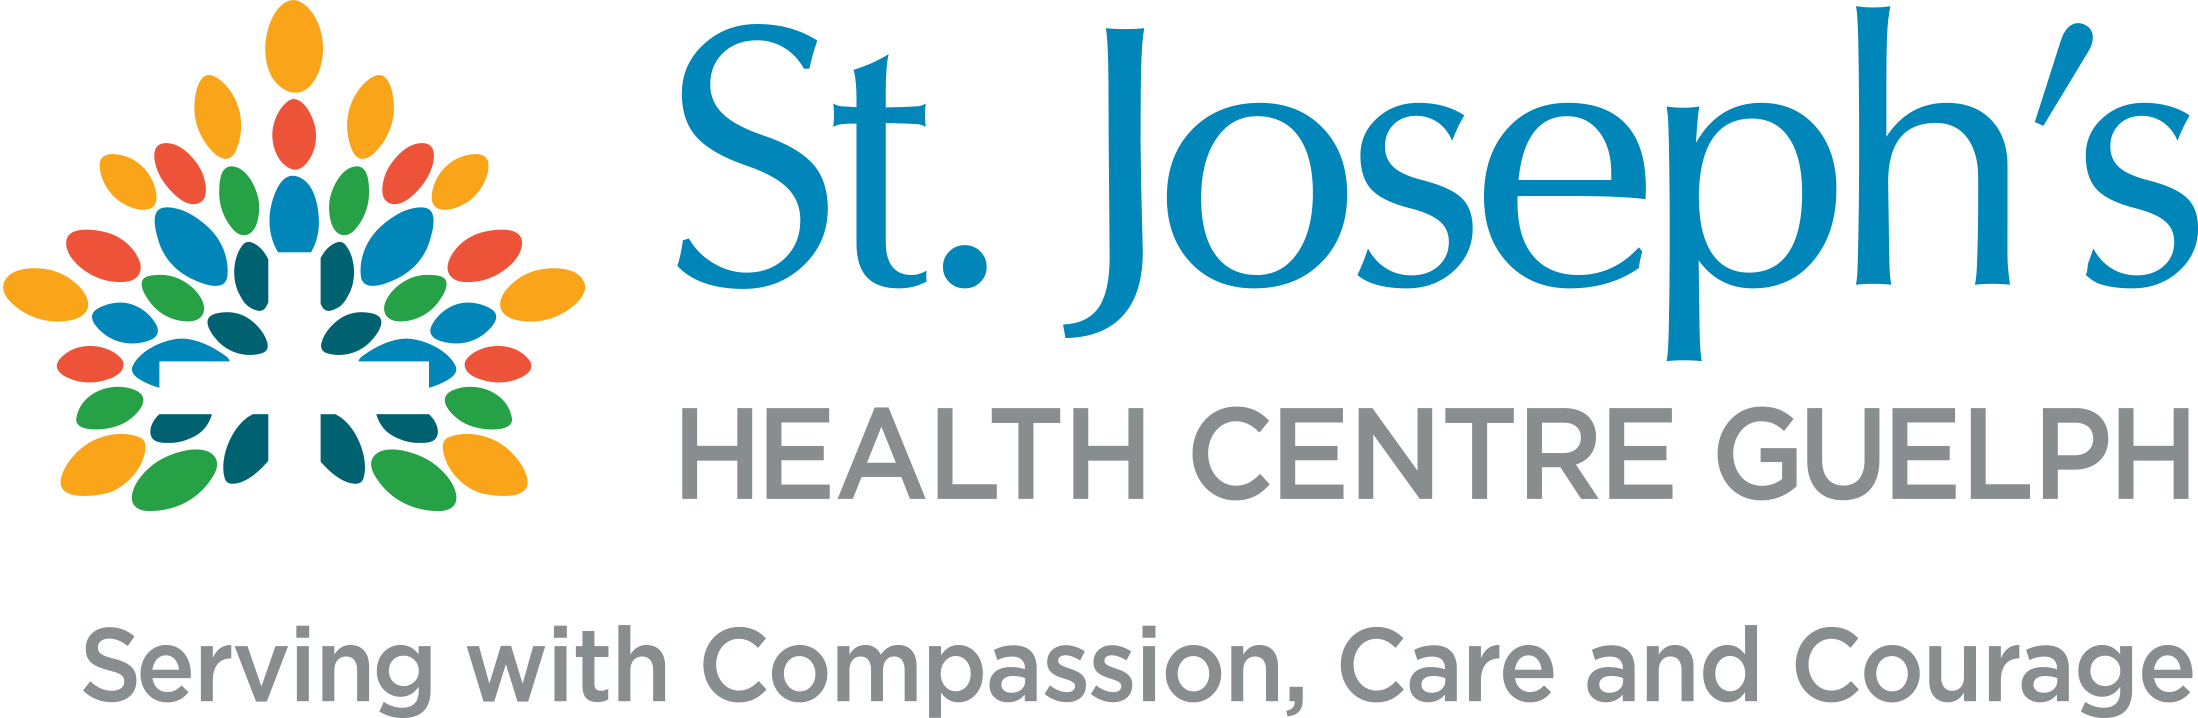 St. Joseph's Health Centre Guelph - Serving with Compassion, Care, and Courage